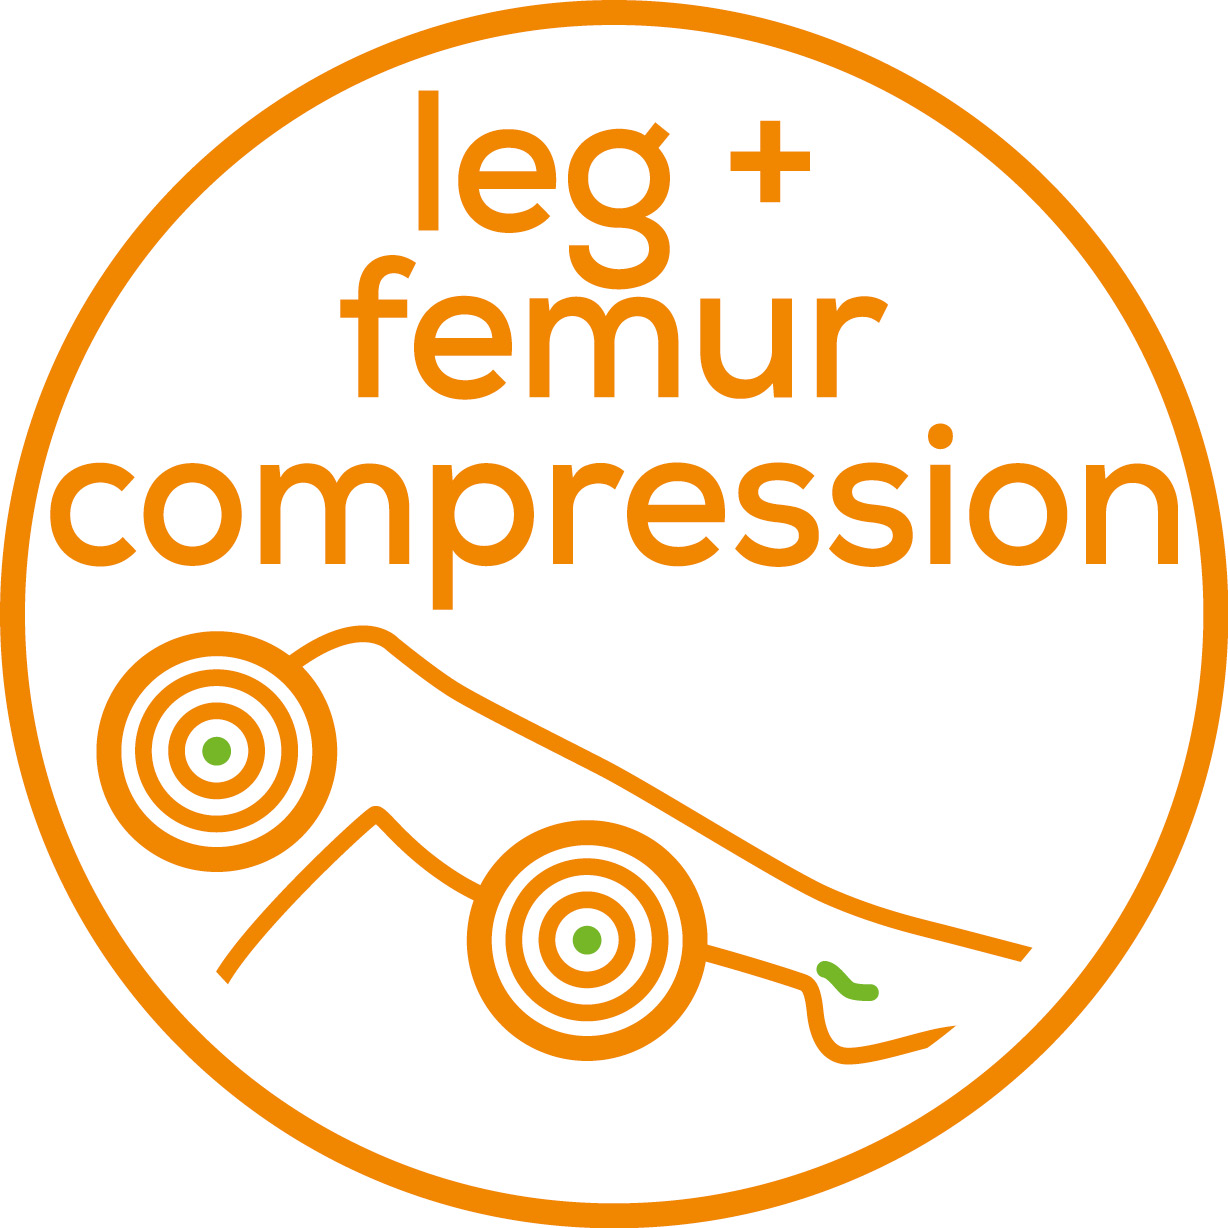 Leg and thigh compression Revitalising compression massage promotes circulation and relieves tired and heavy legs